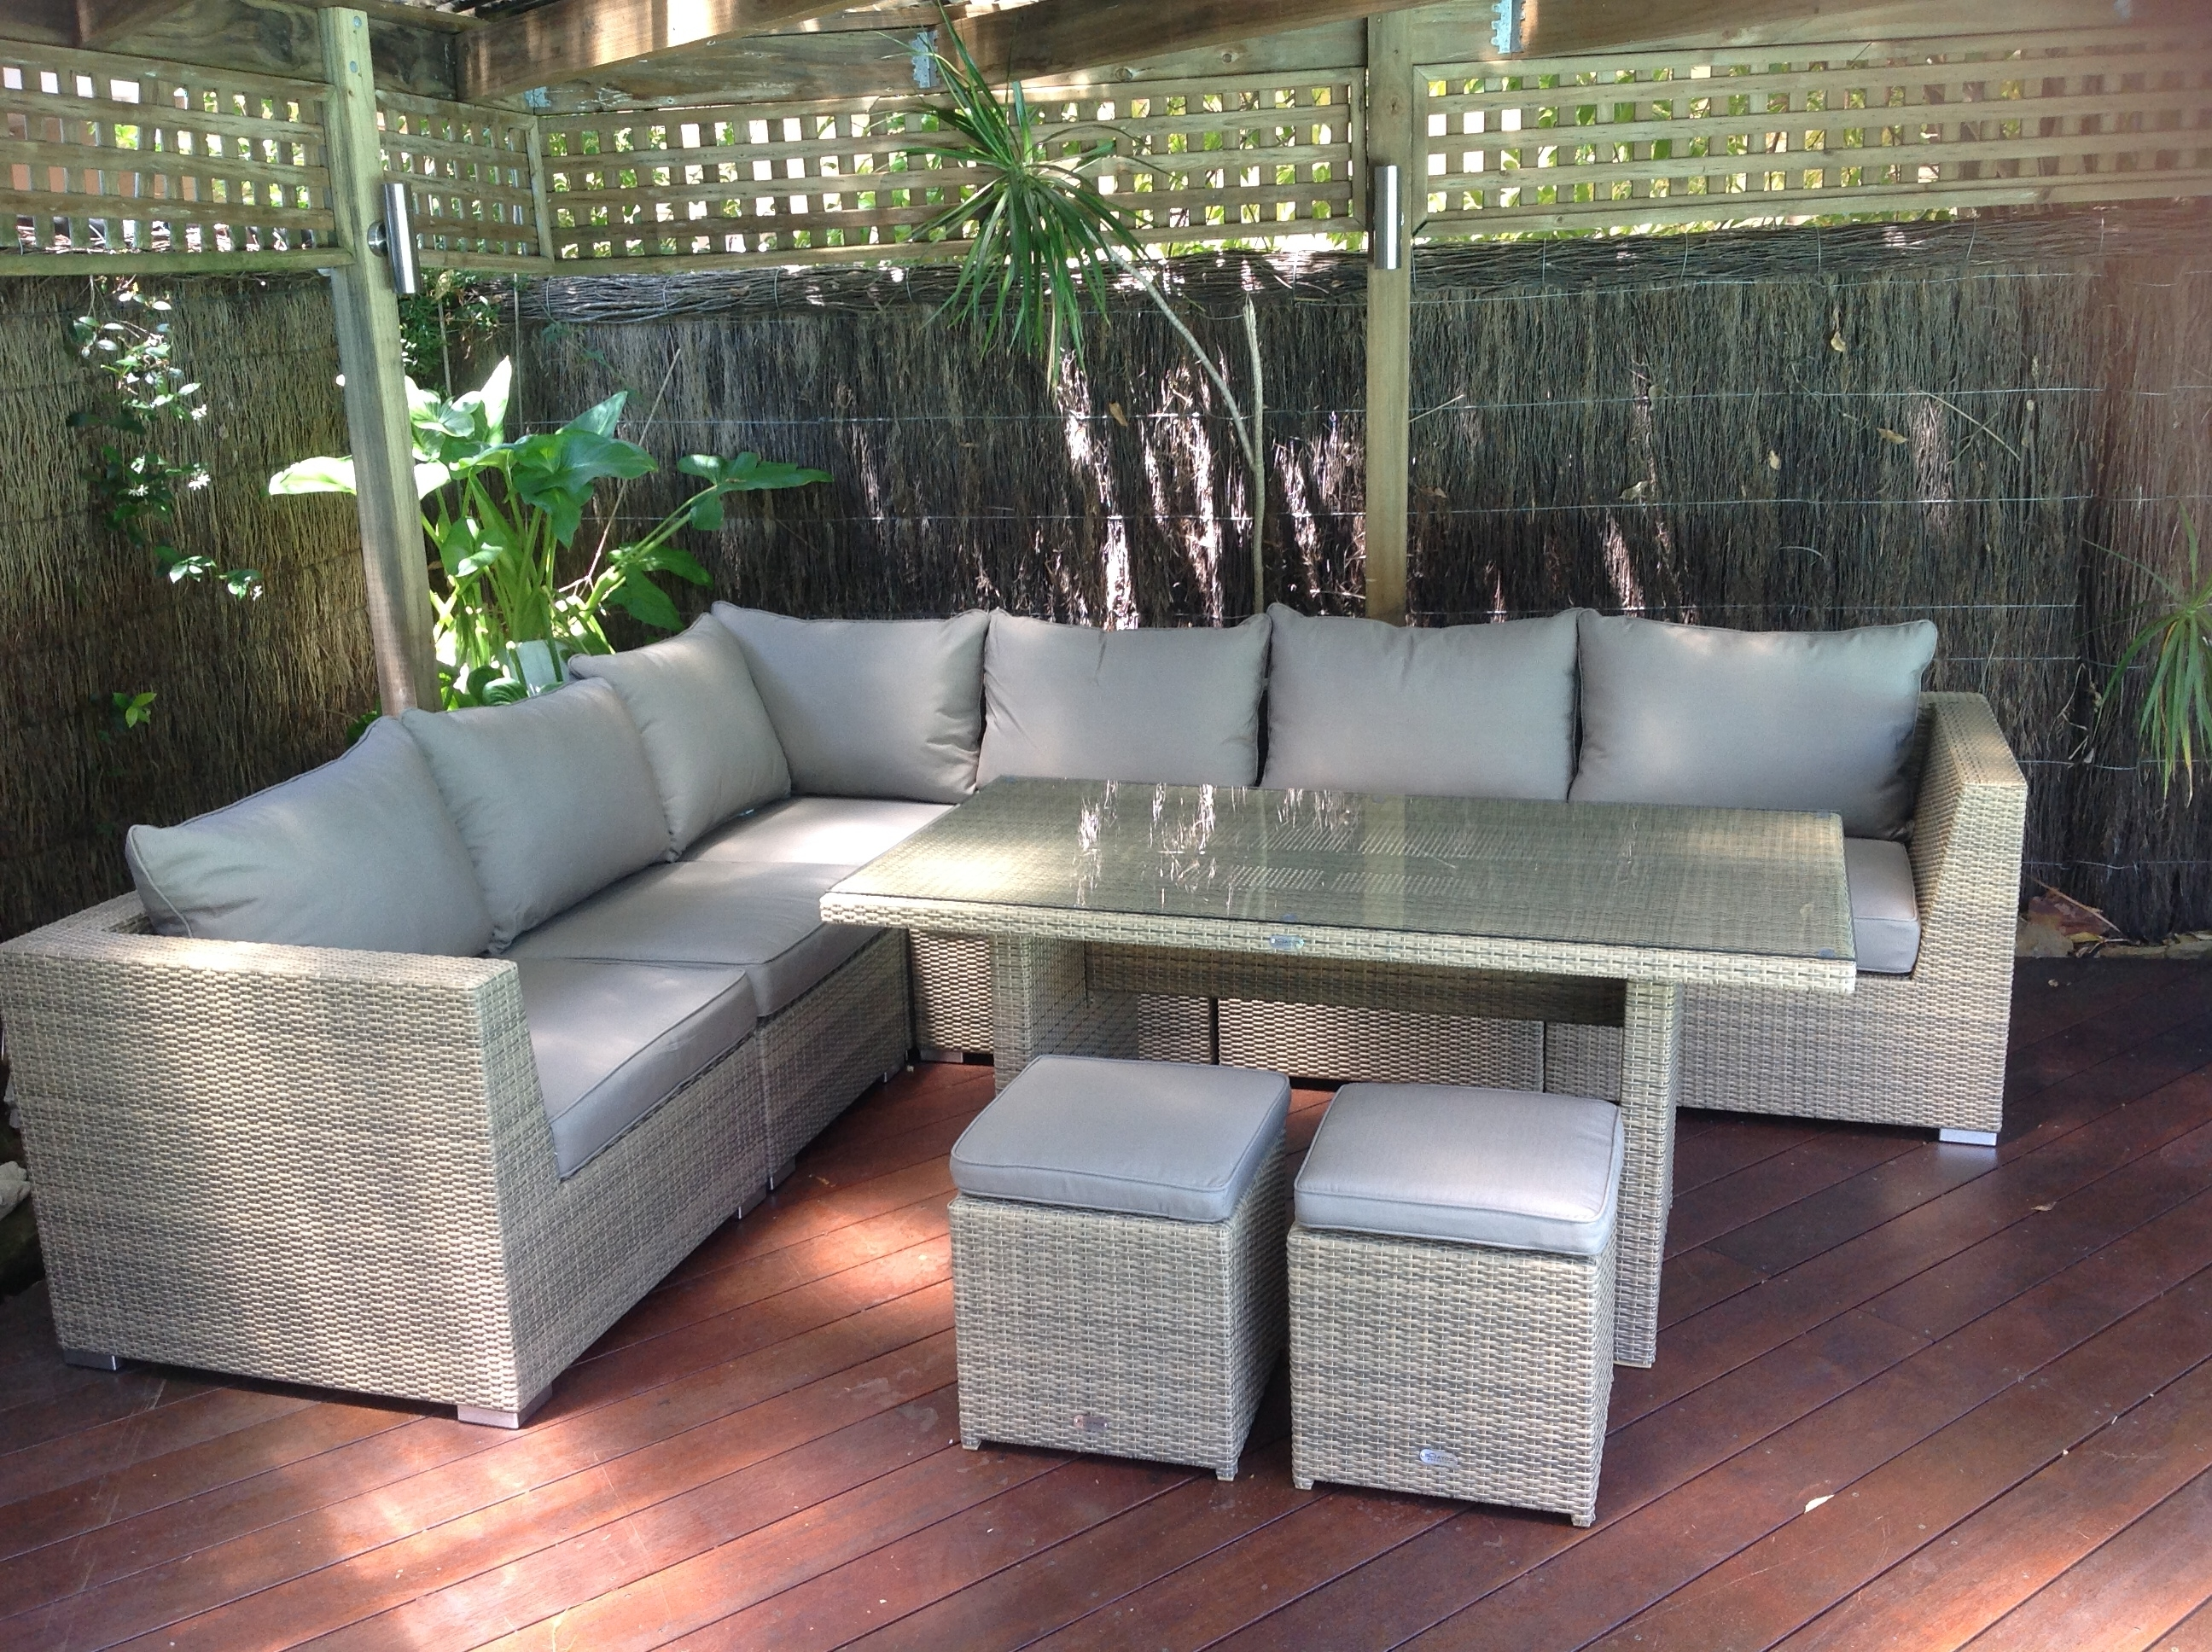 Outdoor Furniture Evolution – Dining Out In Comfort Regarding Preferred Chaise Lounge Sets (View 11 of 15)